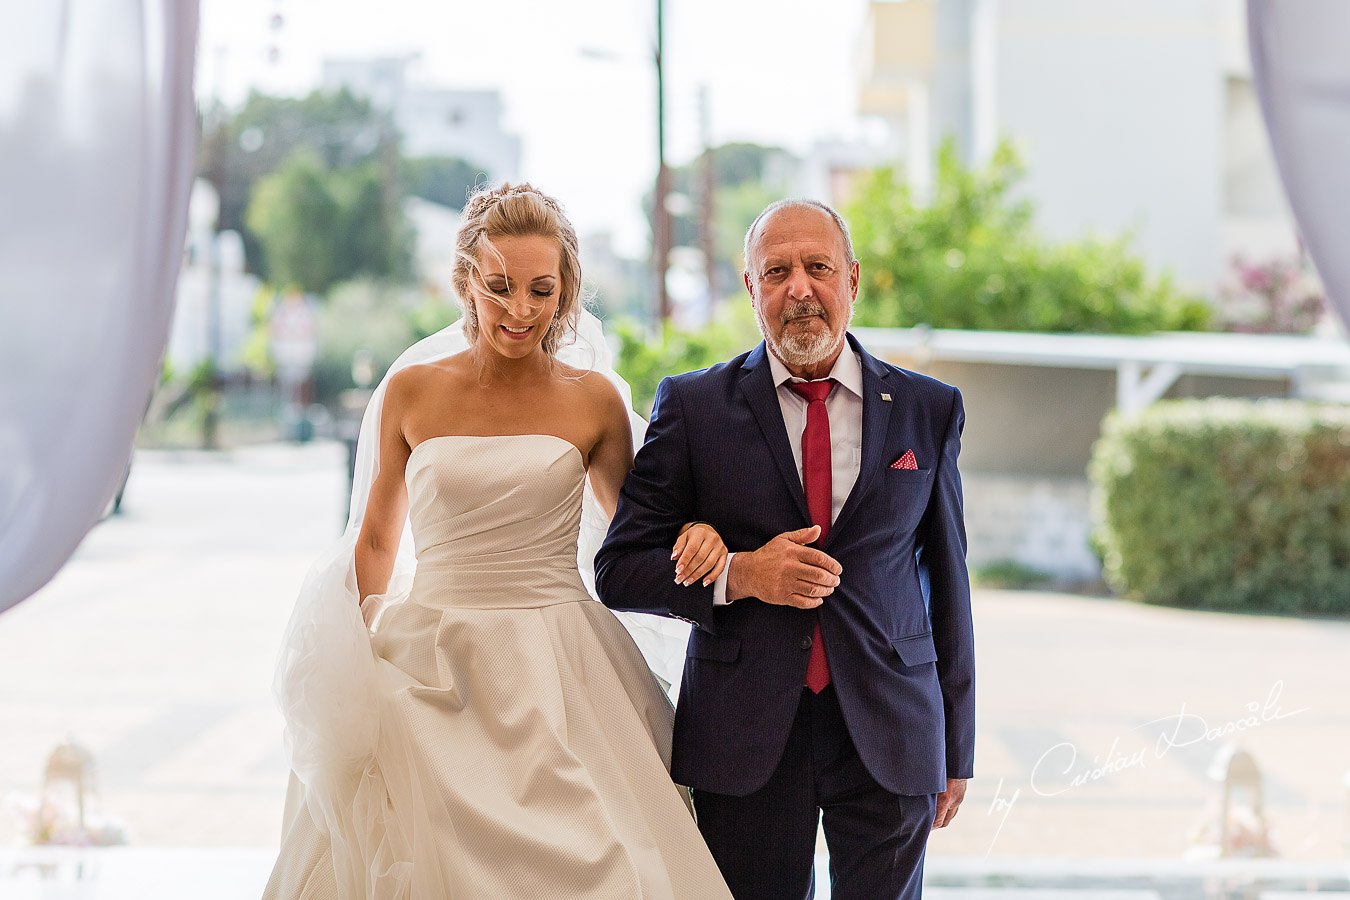 Bride's arrival photographed at a wedding in Nicosia by Cyprus Wedding Photographer Cristian Dascalu